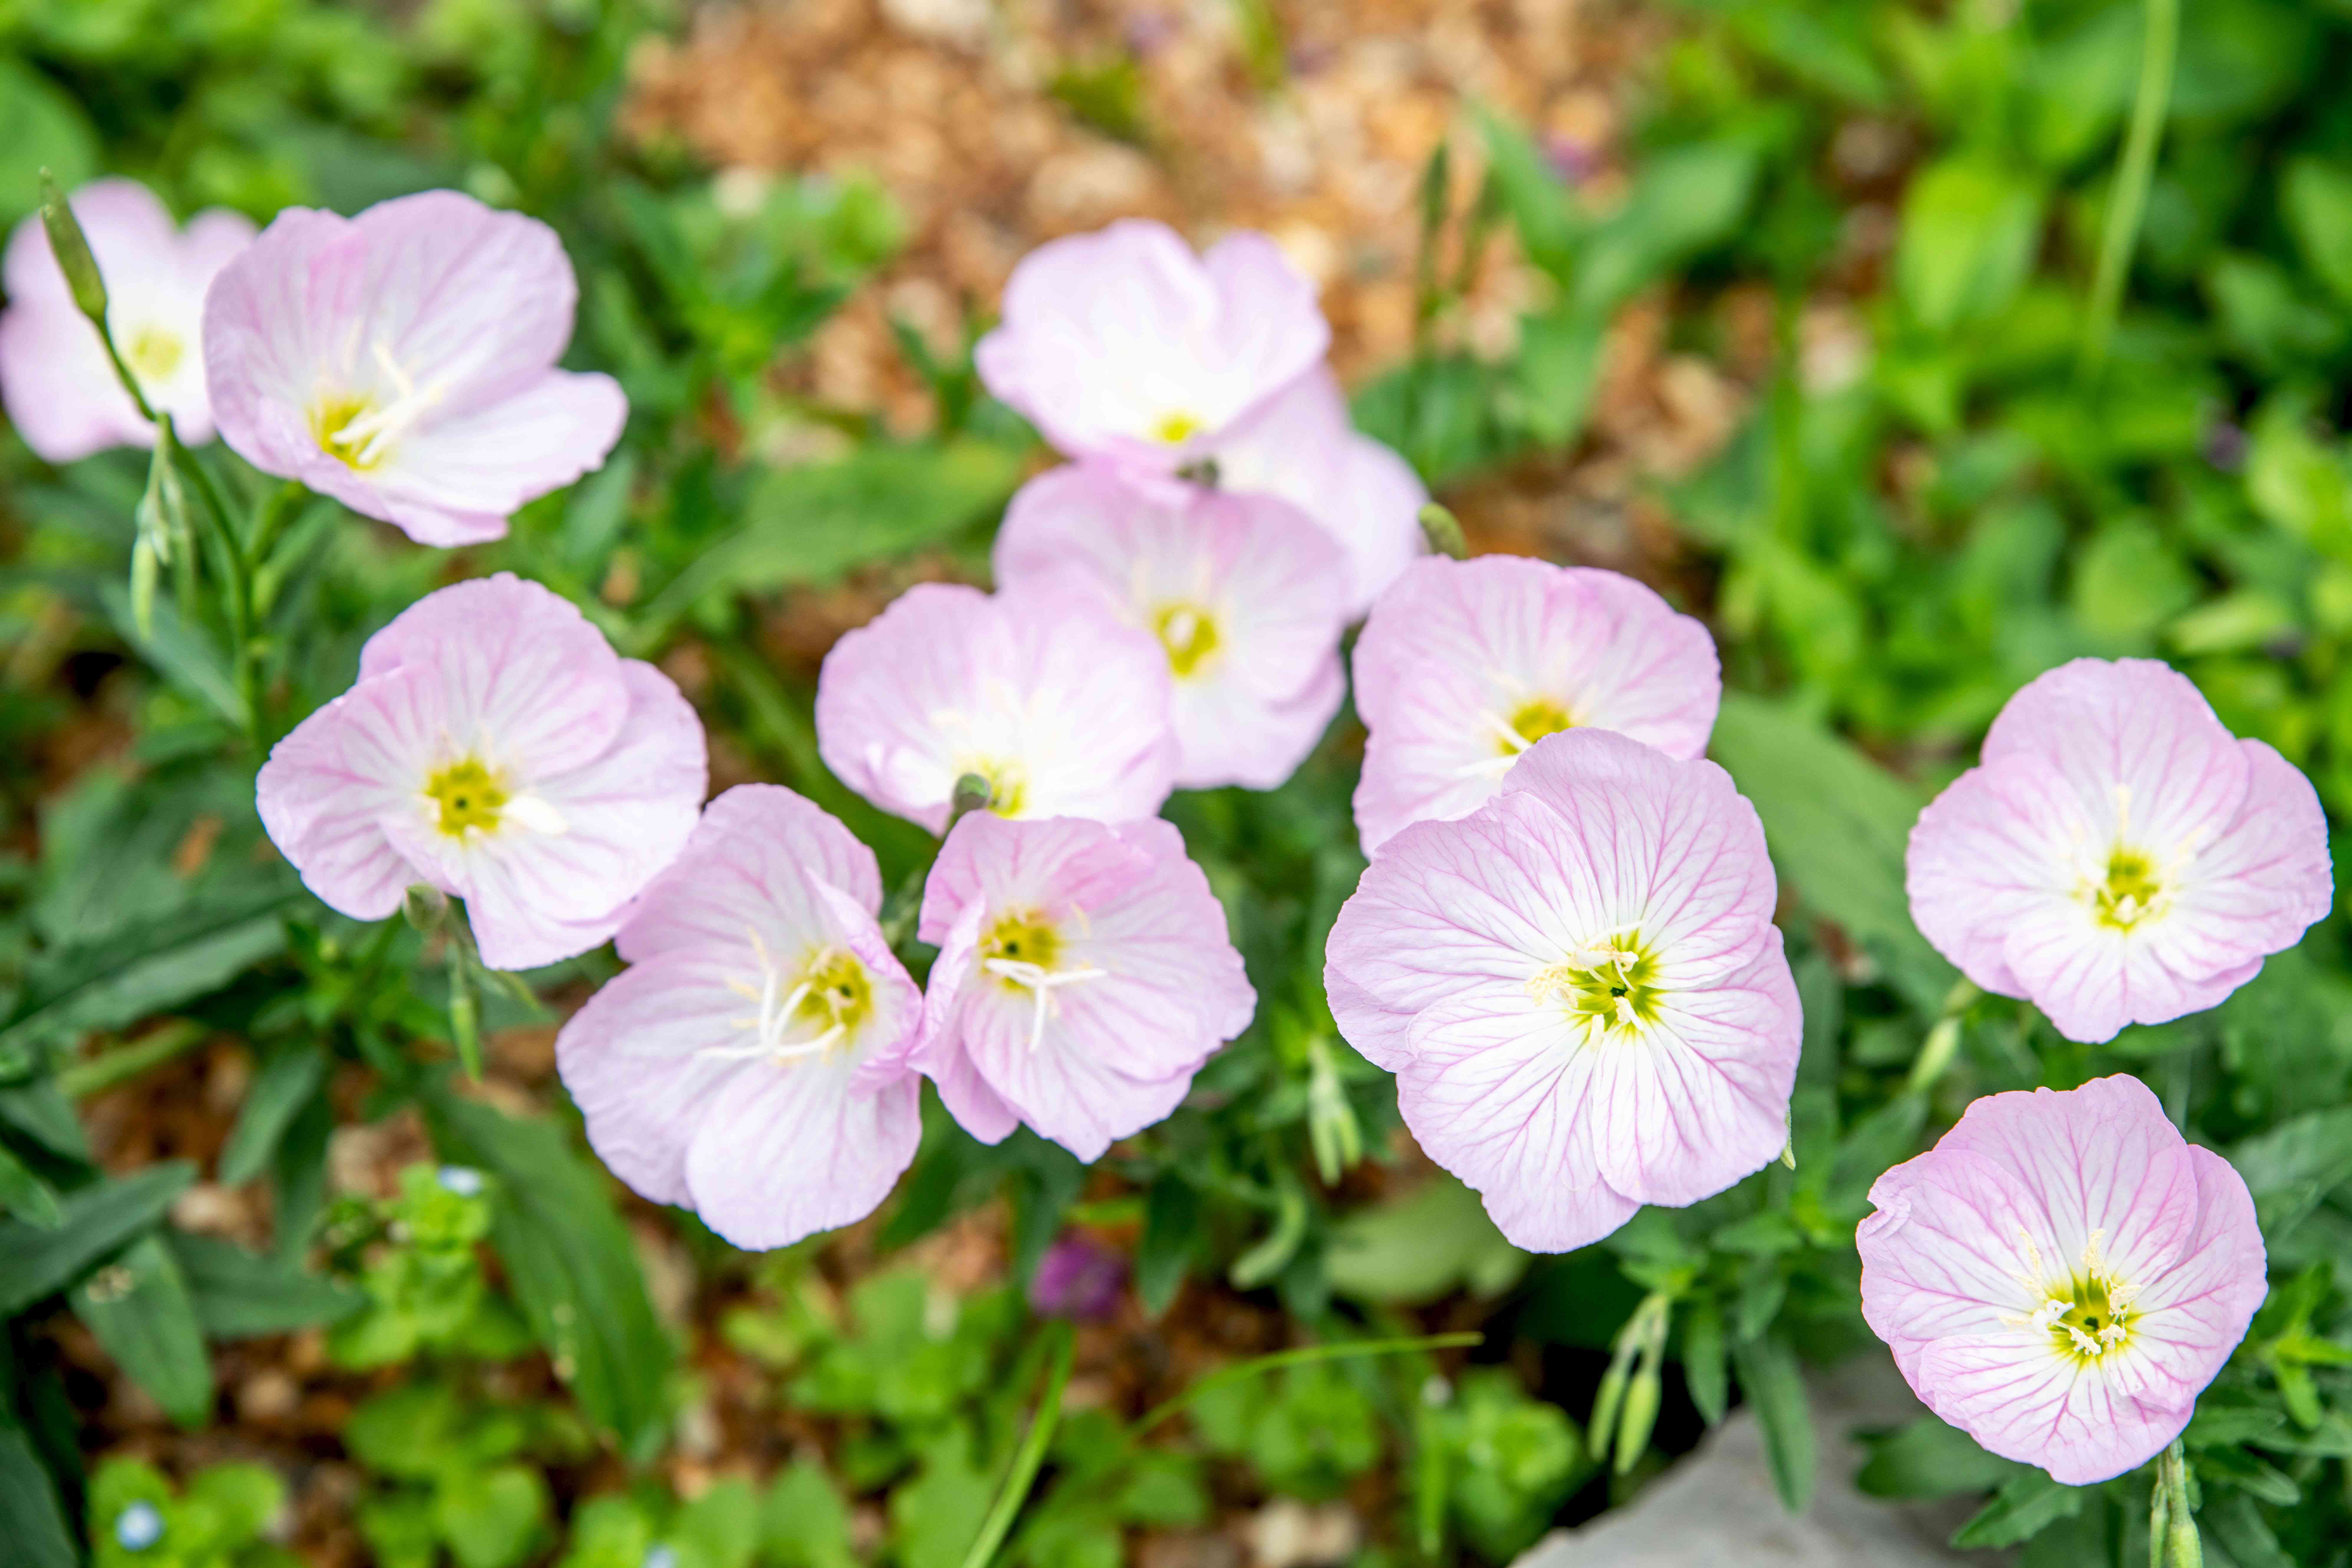 Evening primrose ground cover plant with small pink and white flowers